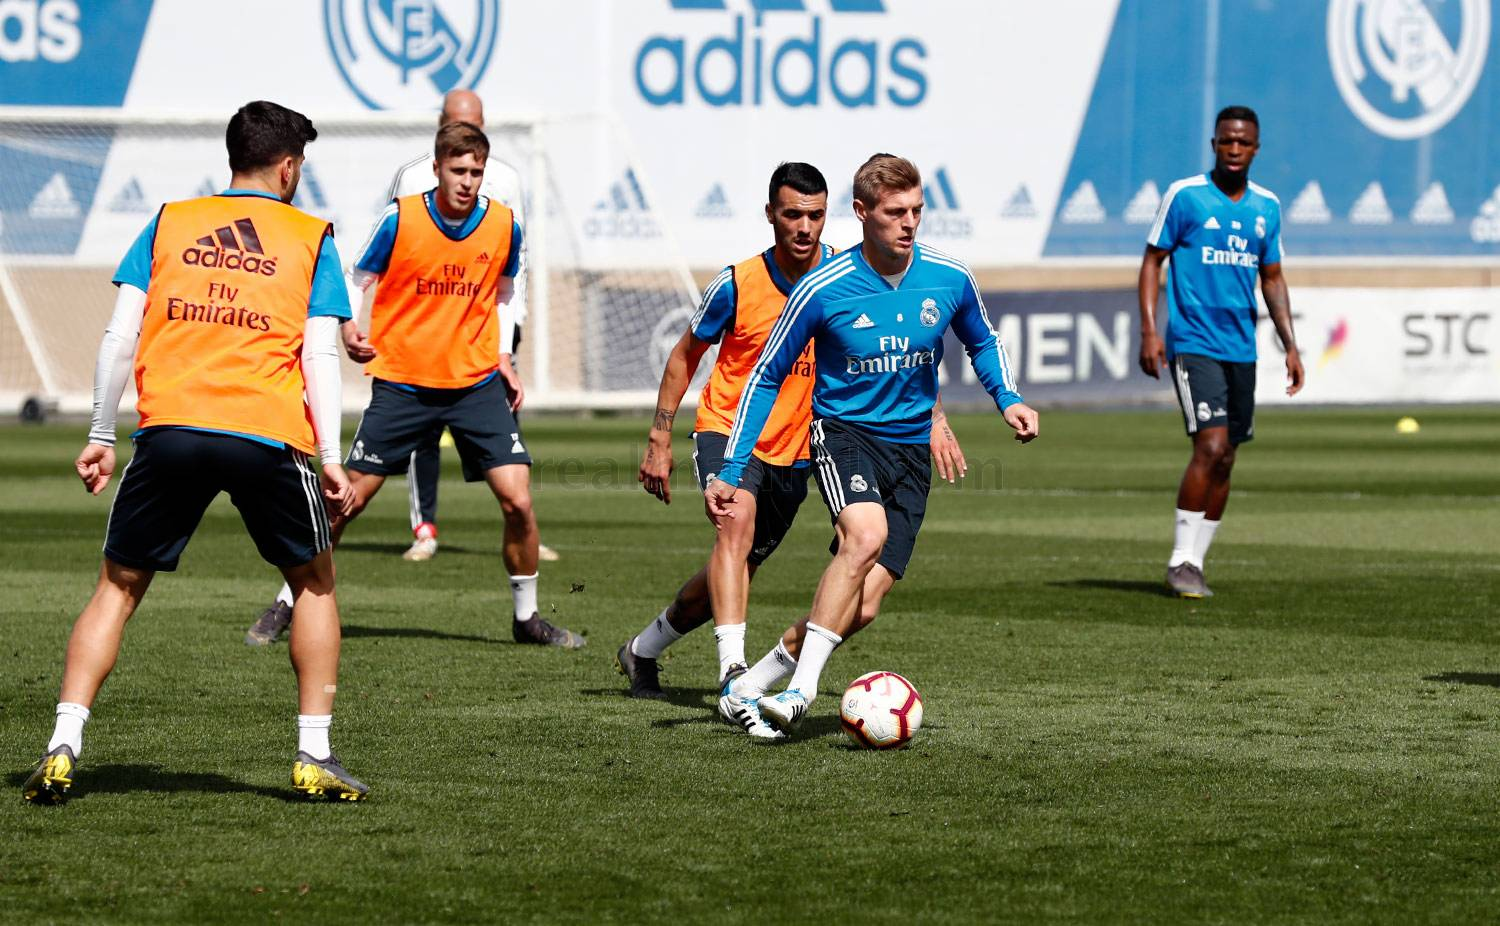 Real Madrid - Entrenamiento del Real Madrid - 26-04-2019